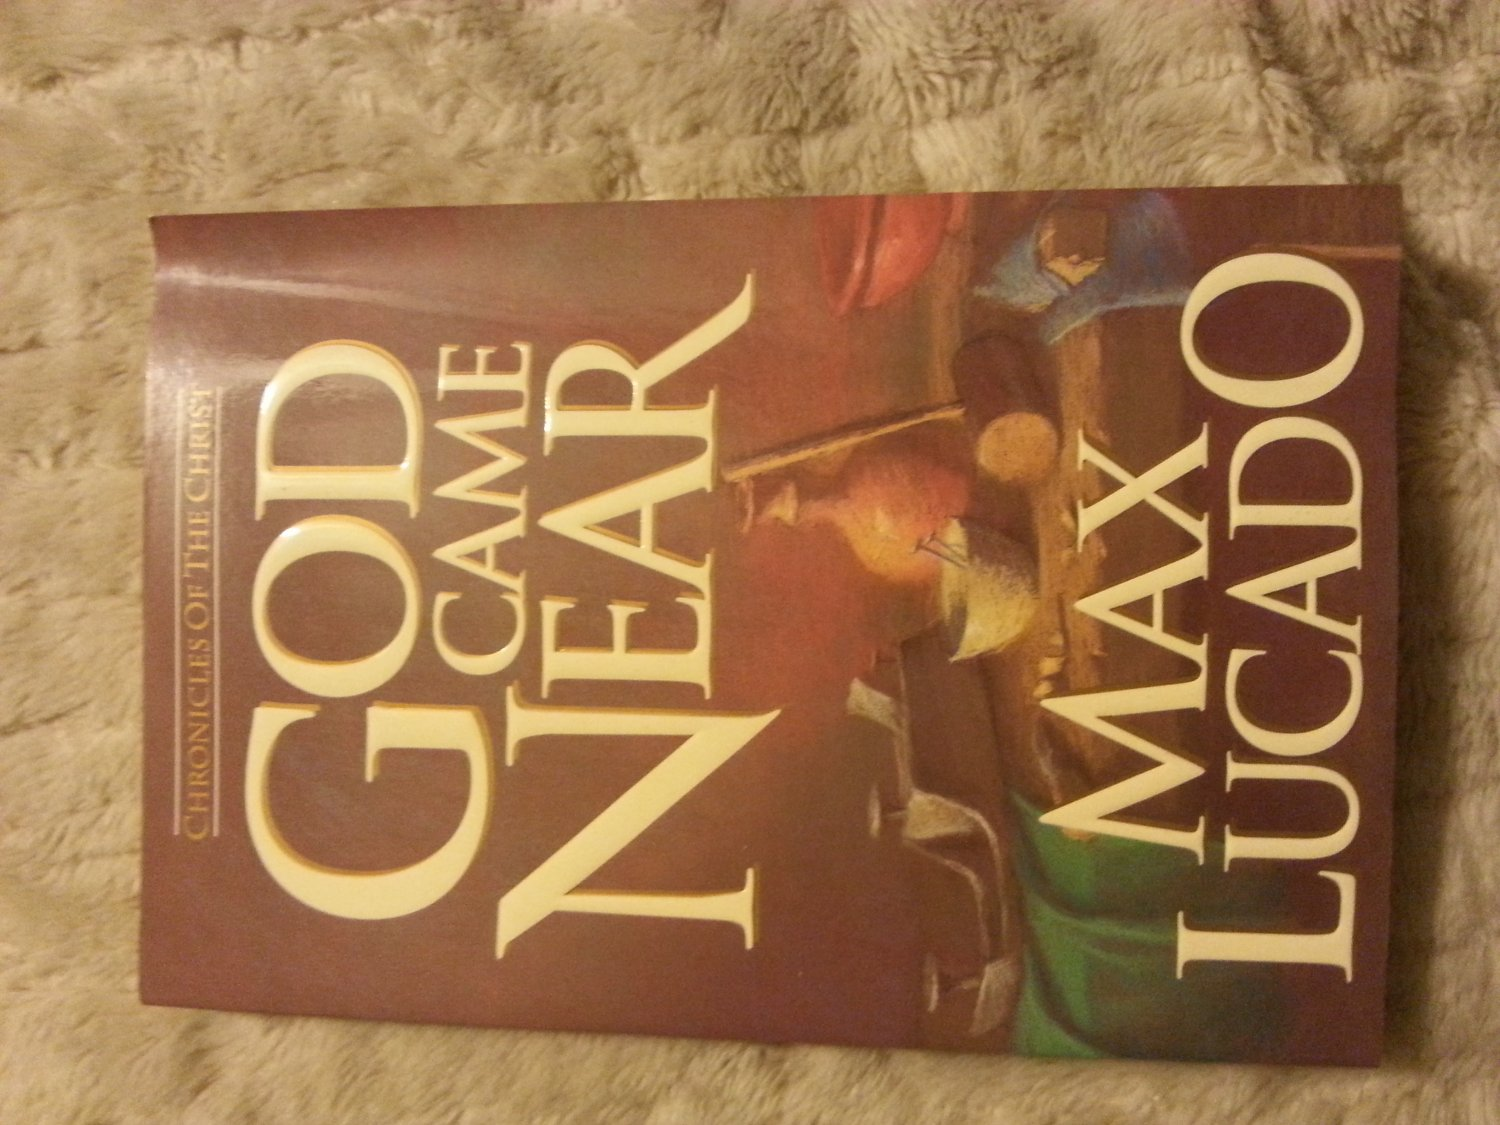 God Came Near By Max Lucado Paperback ISBN 0880705744